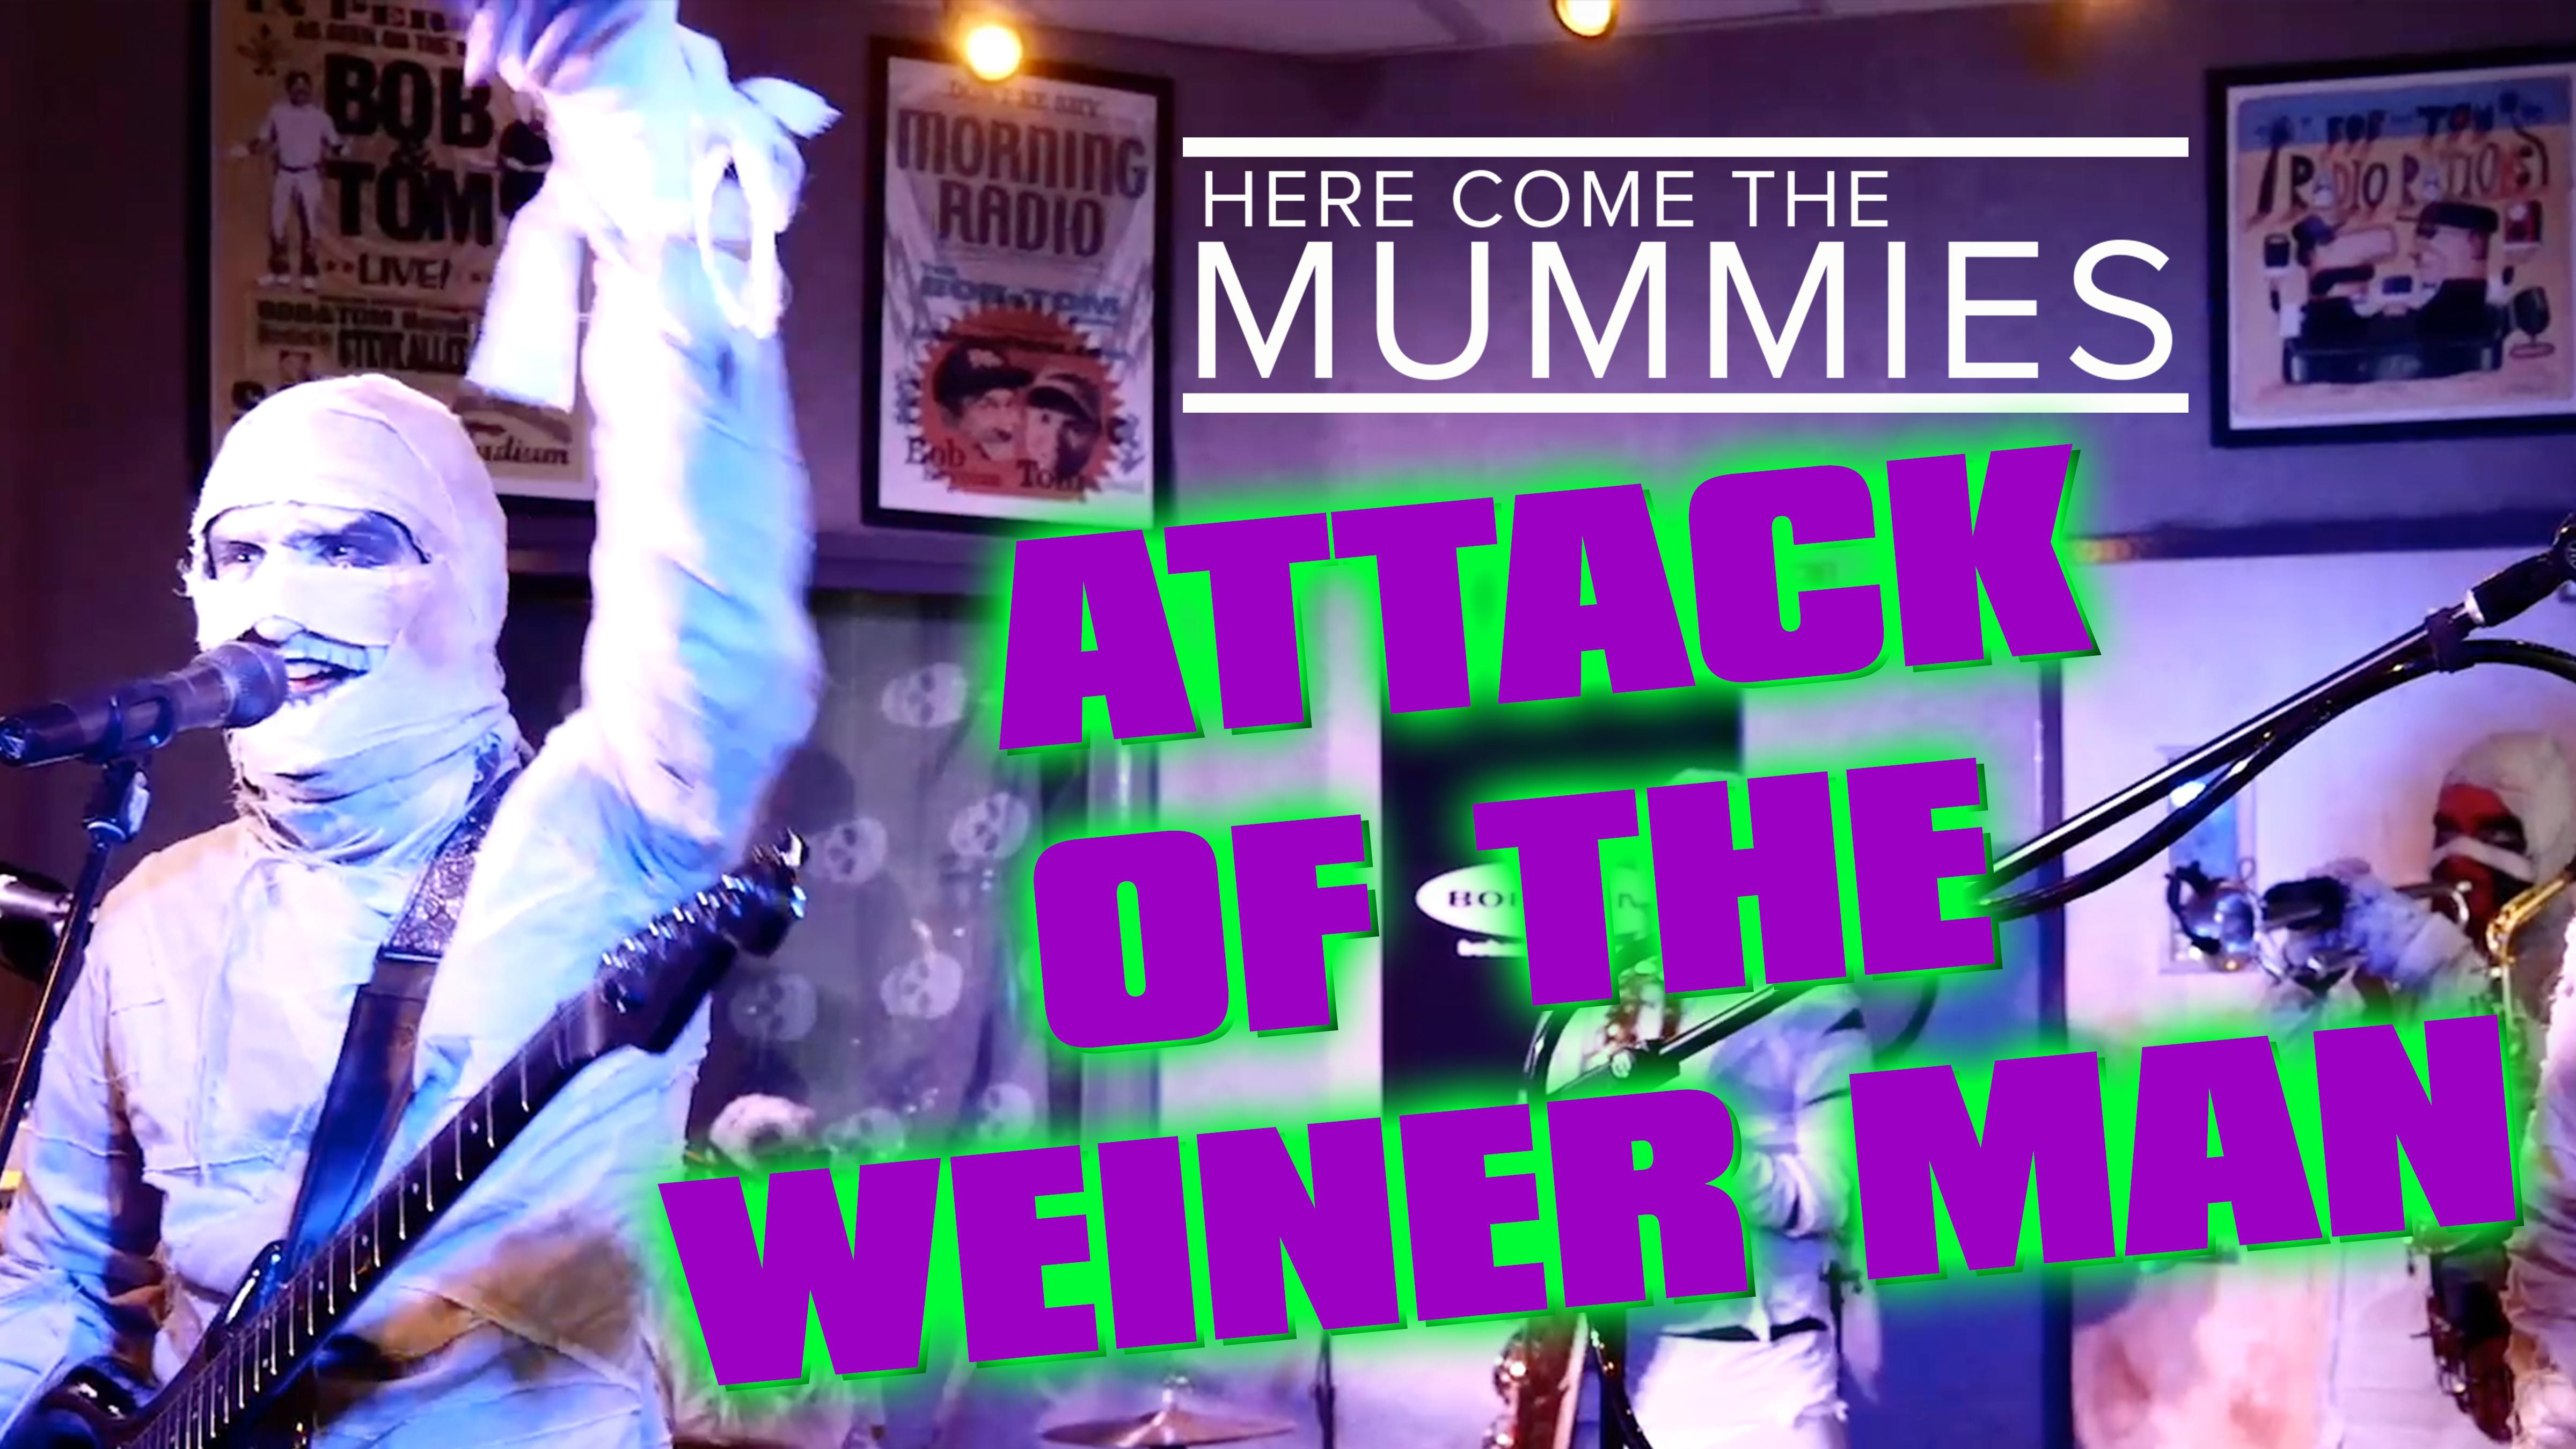 Here Come the Mummies – Attack of the Weiner Man